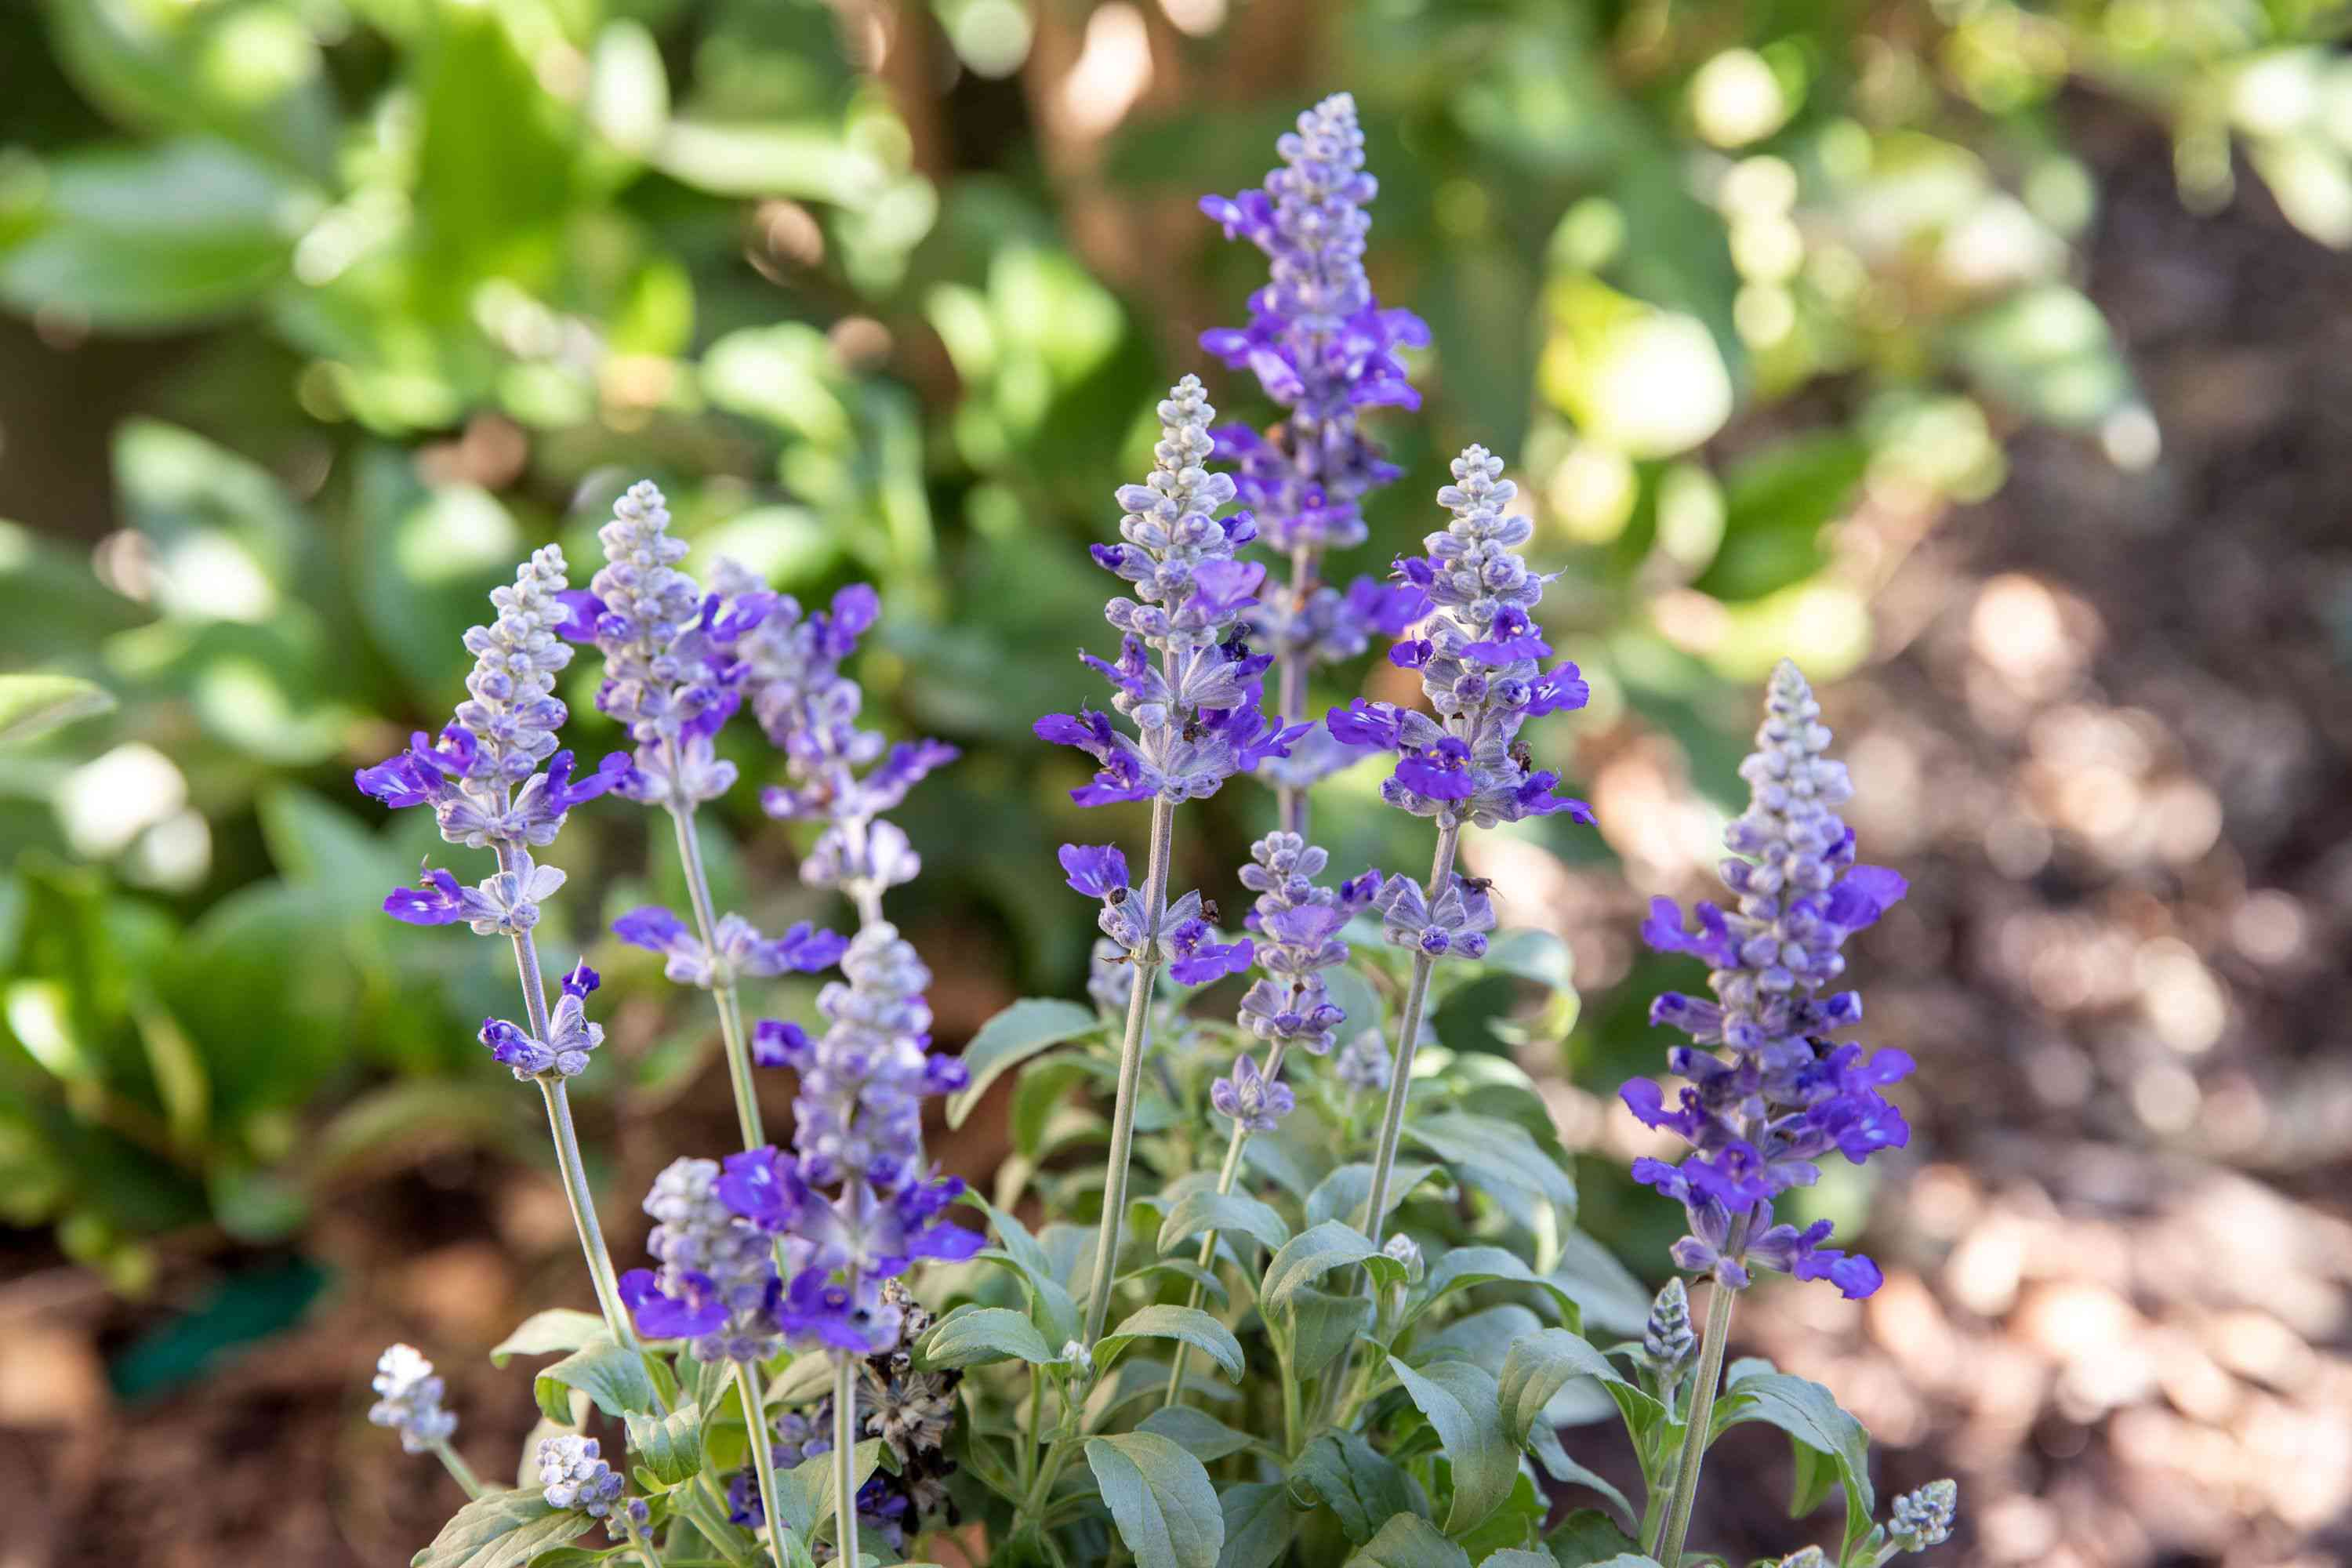 Perennial salvia plant with small purple flower blooms on spikes